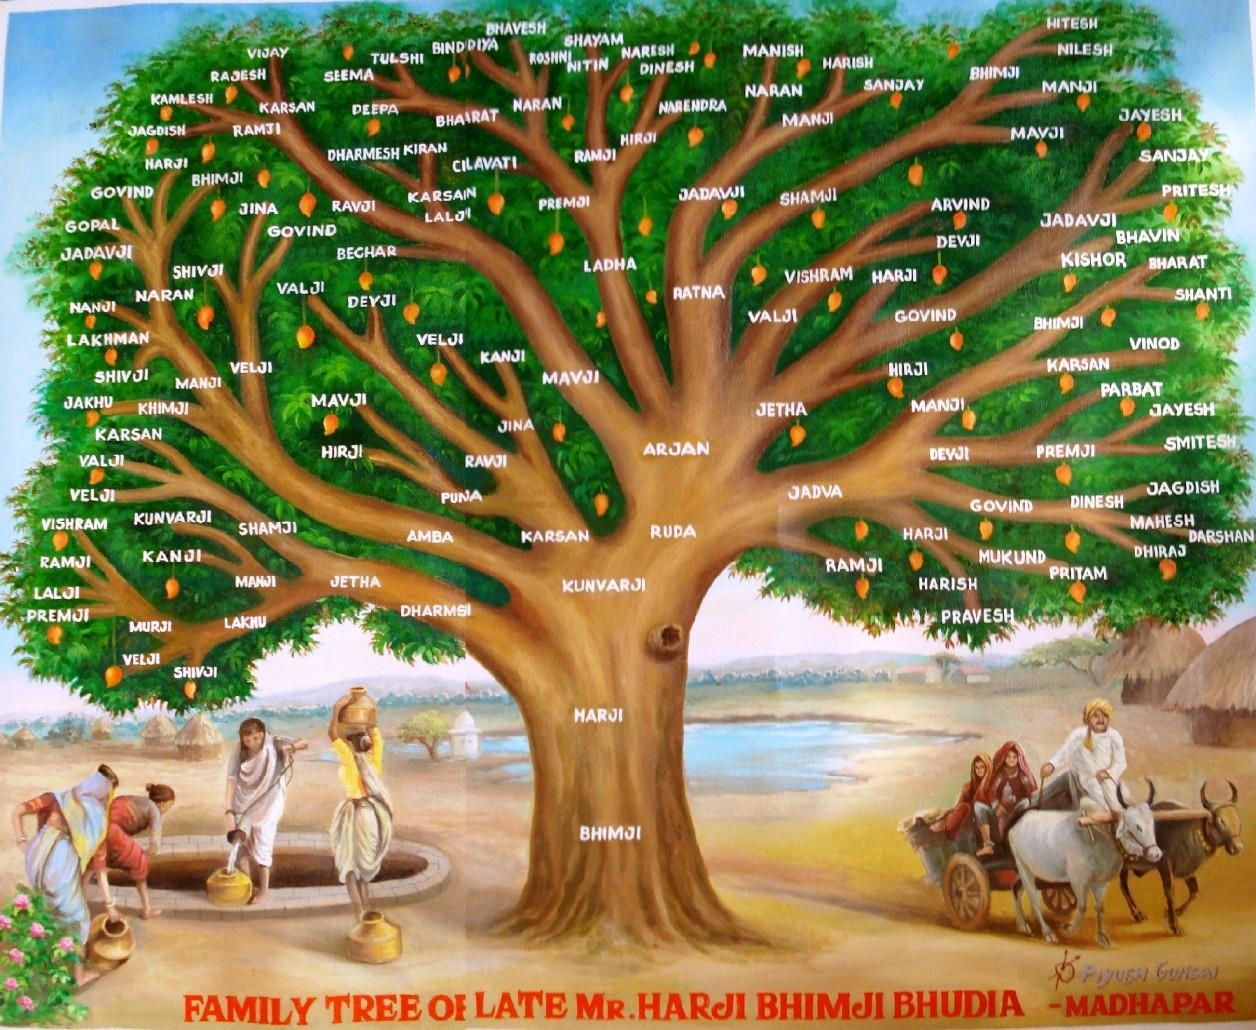 It's just a photo of Amazing Photos Family Tree